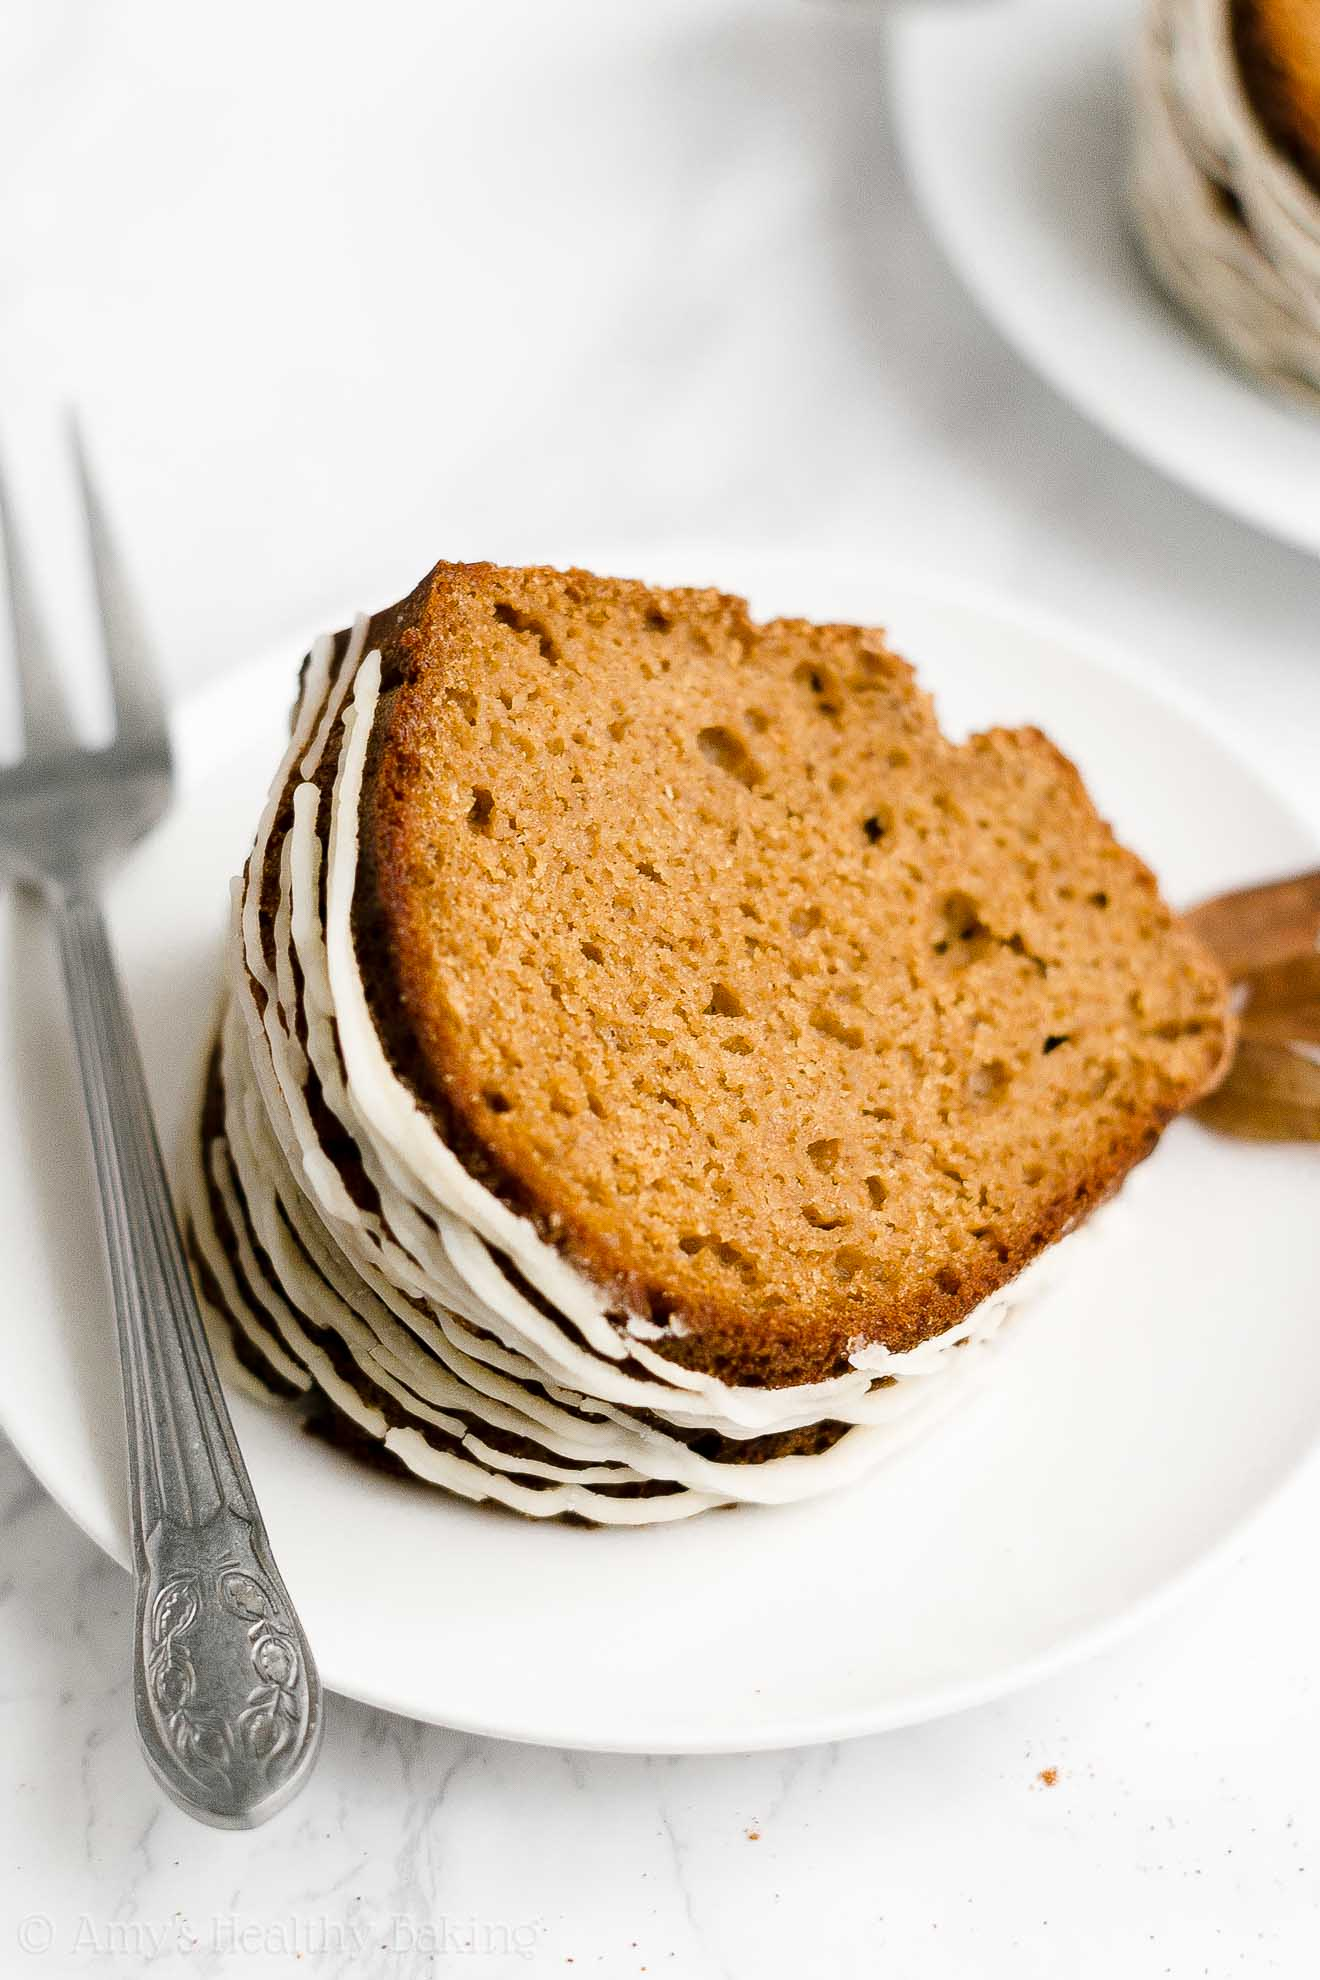 Best Easy Healthy Low Fat Whole Wheat Moist Gingerbread Bundt Cake with Glaze